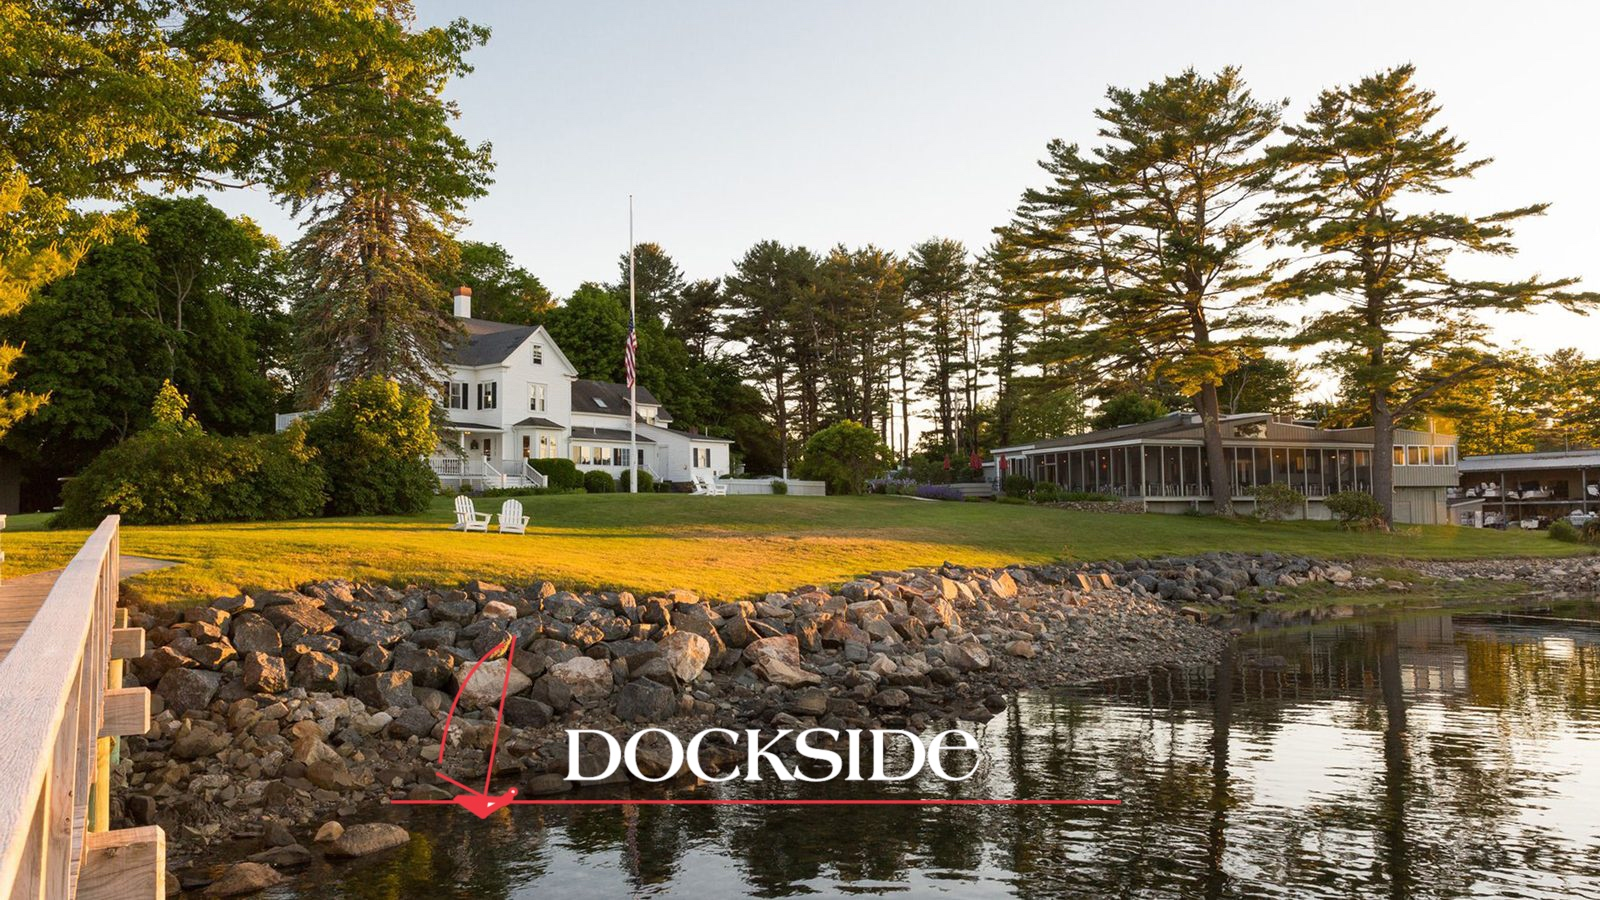 Welcome To Dockside Restaurant & Guest Quarters. We are  a family-owned, waterfront restaurant and private event venue in beautiful York, Maine.